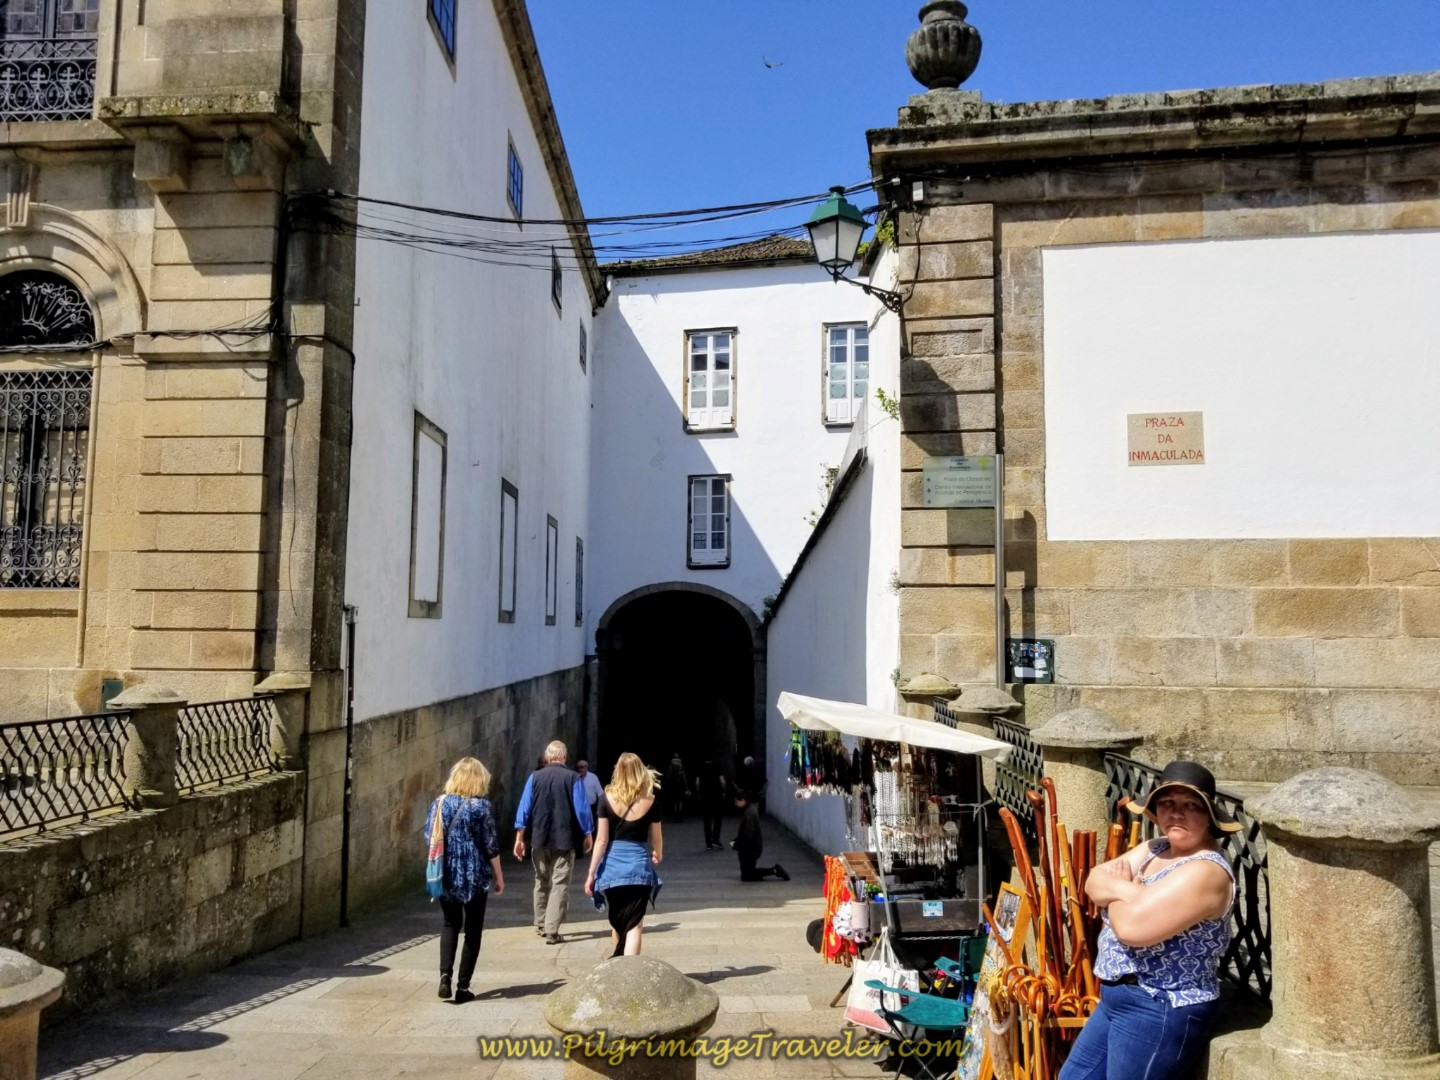 Through the Arco de Palacio to Obradoiro Square on day eight of the English Way